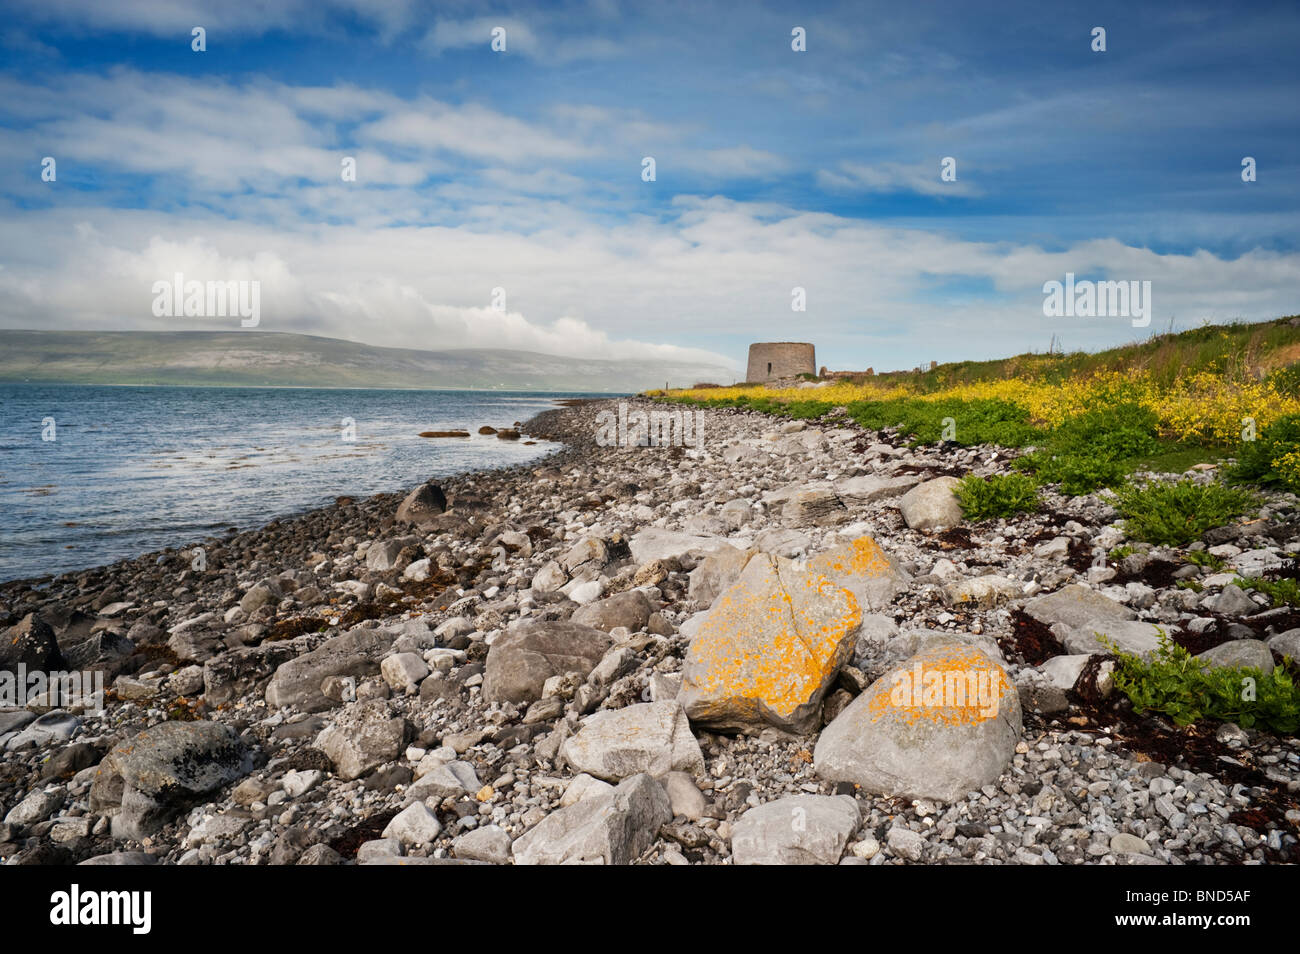 Finavarra Point, the Burren, County Clare, west of Ireland, with Martello tower and yellow sea radish flowers - Stock Image